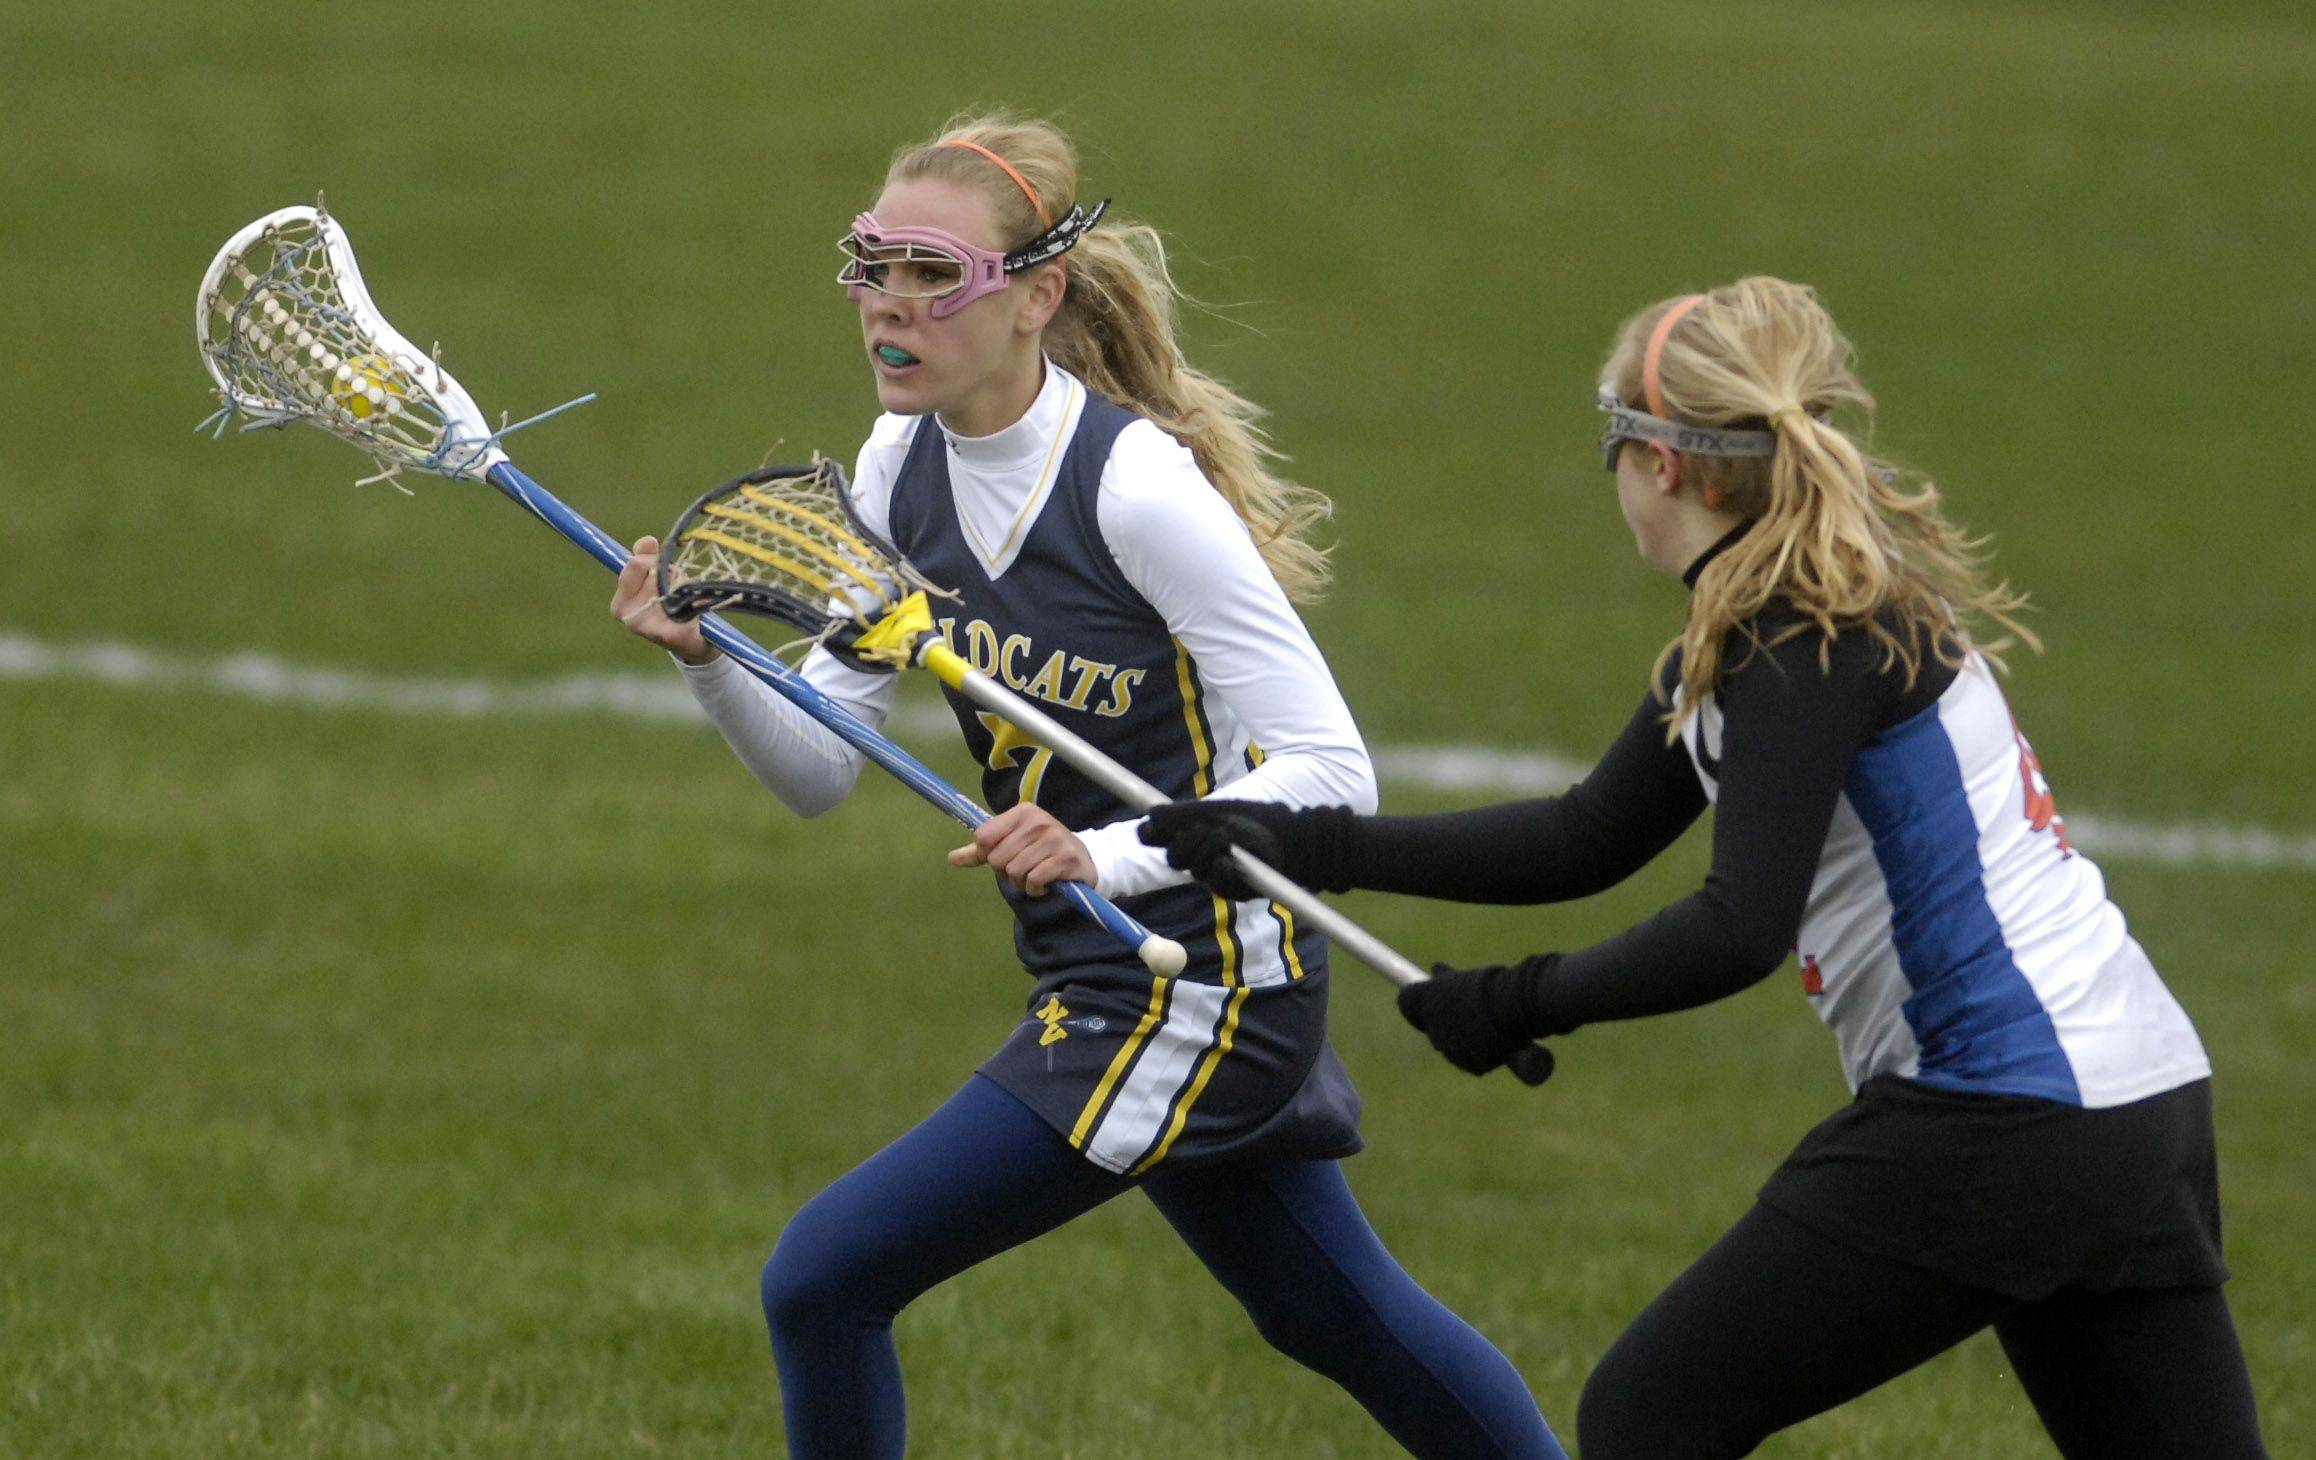 St. Charles Co-op vs. Neuqua Valley in girls lacrosse action in St. Charles Thursday, April 21, 2011.